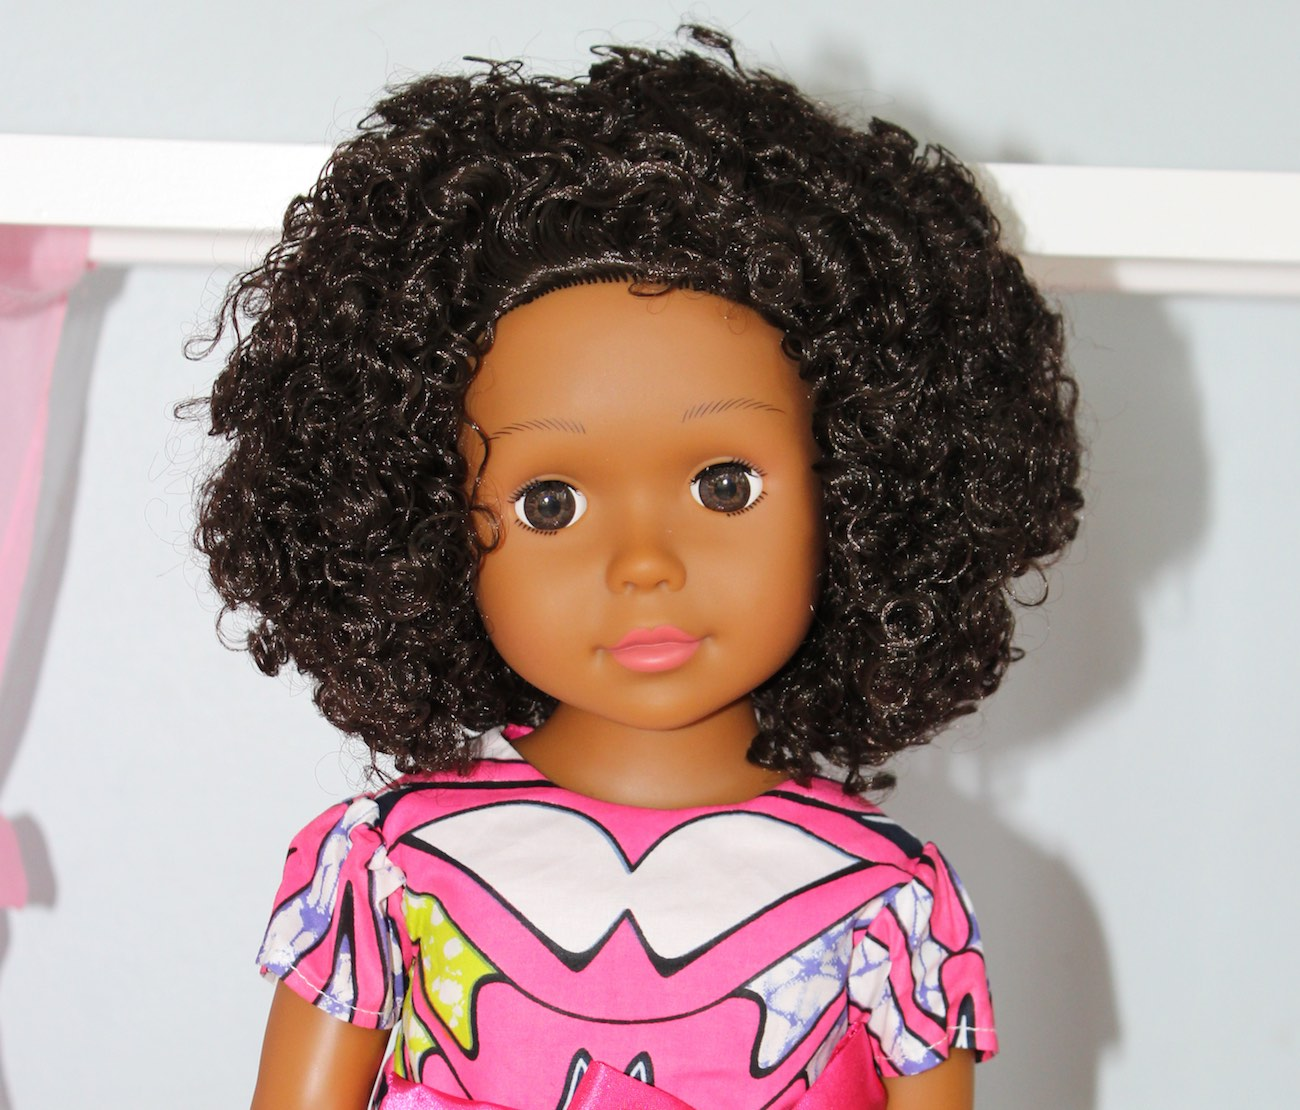 Ikuzi Dolls Beautiful Dolls Of Color 187 Gadget Flow